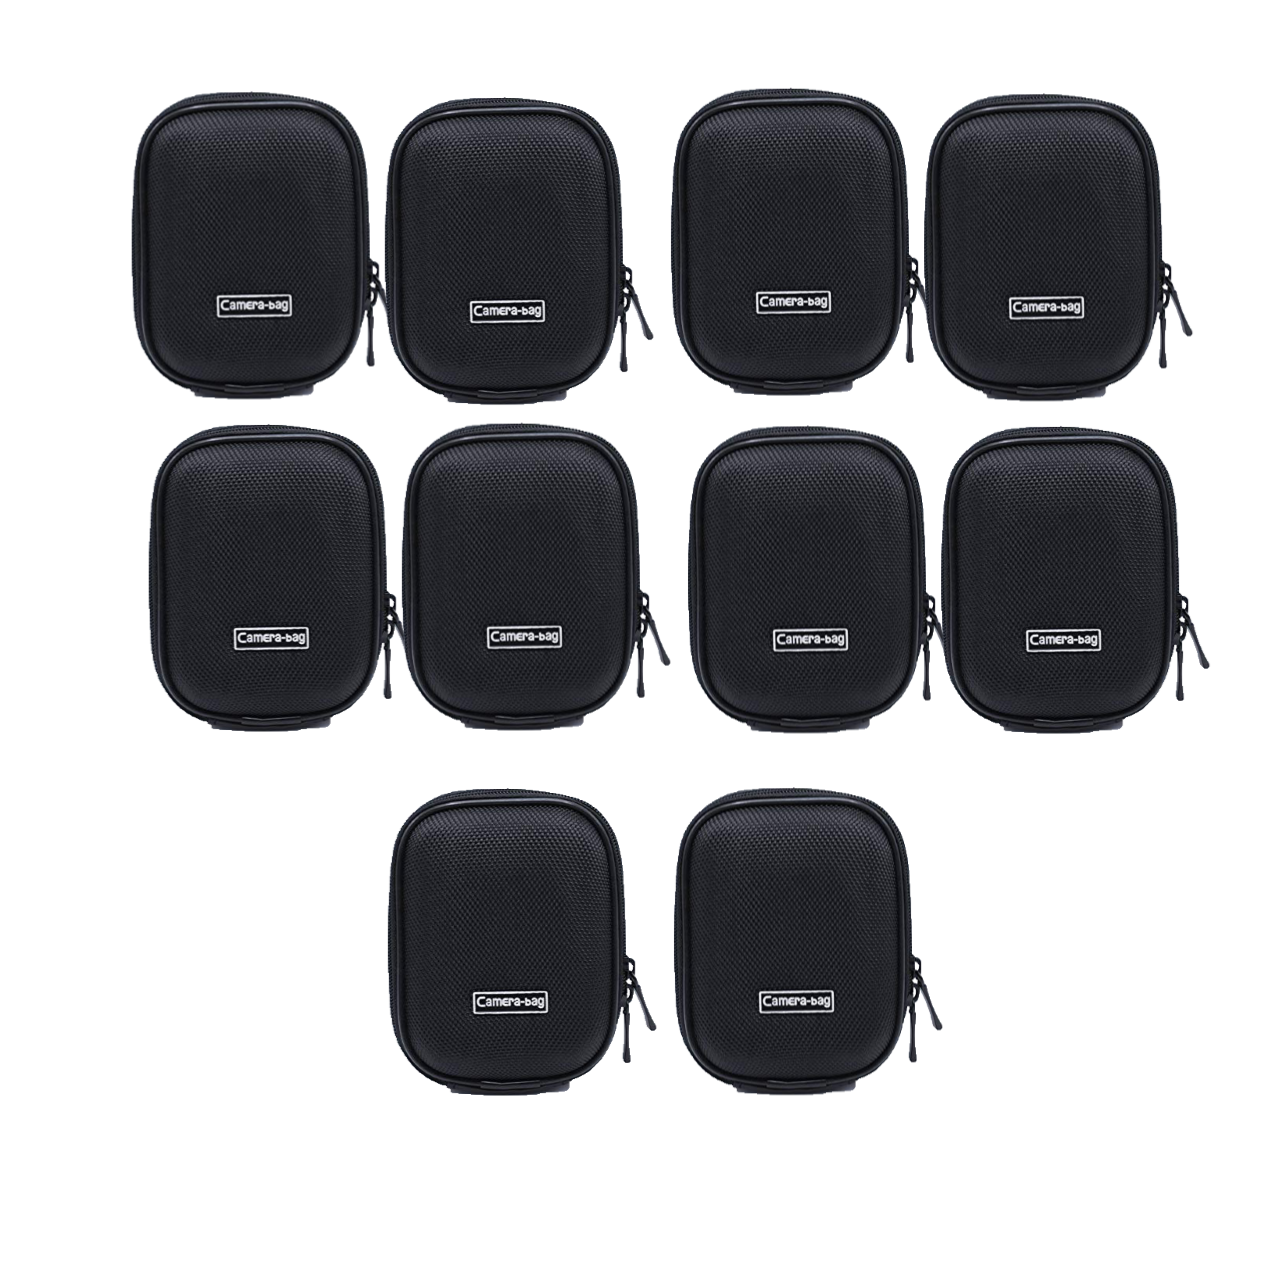 Universal Anti-Shock Hard Shell Camera Case Bag With Blet Loop For Compact Compact Digital Camera Sony Nikon Canon (Black) Camera Bag -237 Pack Of 10Pcs Camcorder & Camera Accessories Camera Bags